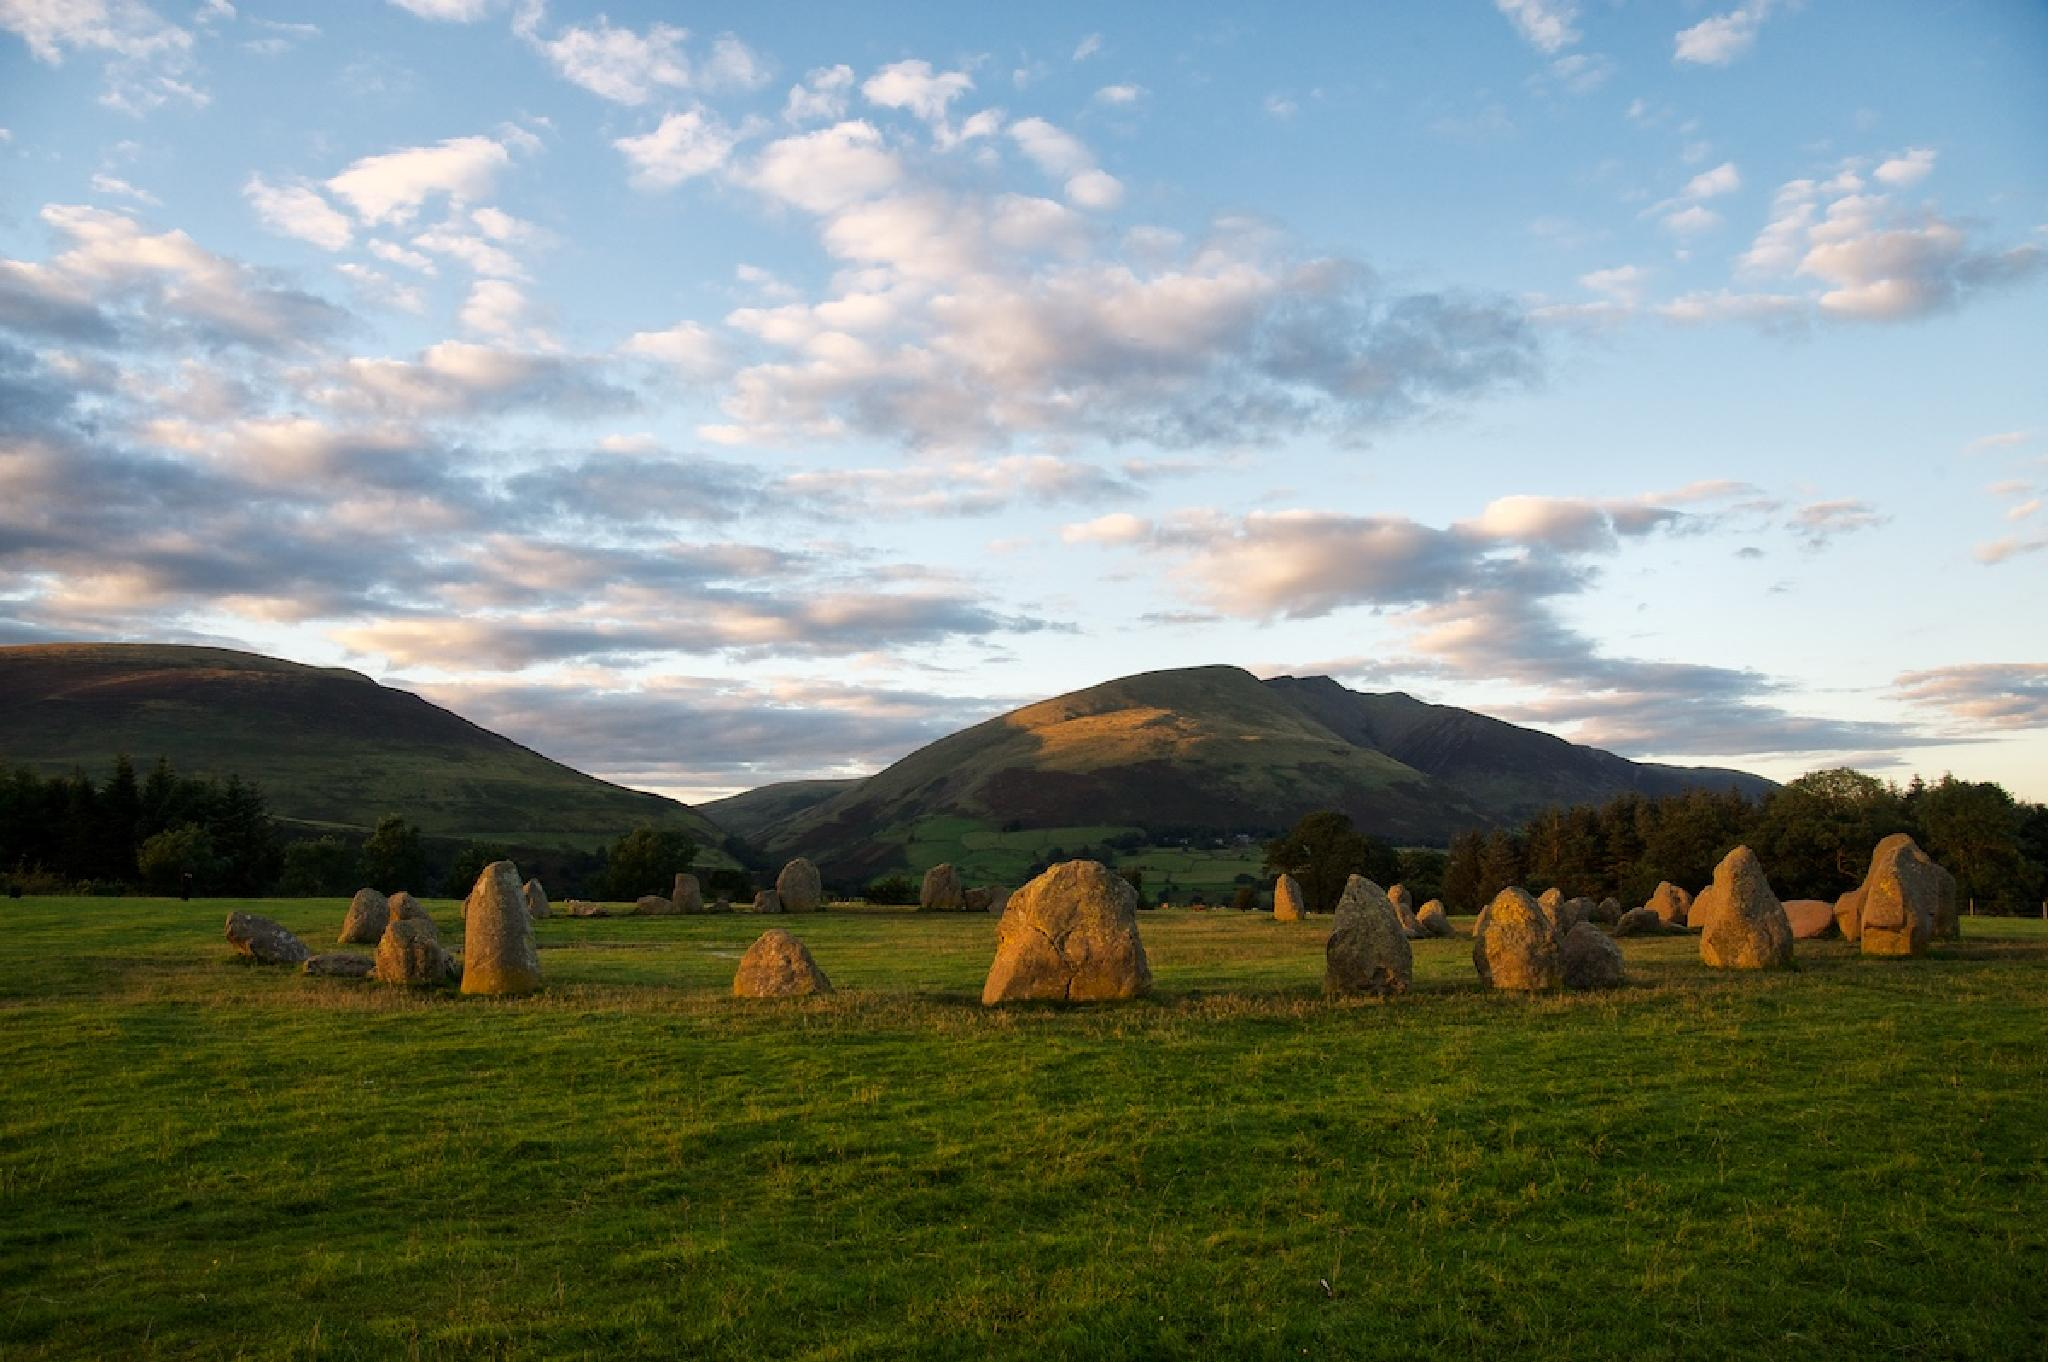 Evening light on Blencathra by Ian K. Iles